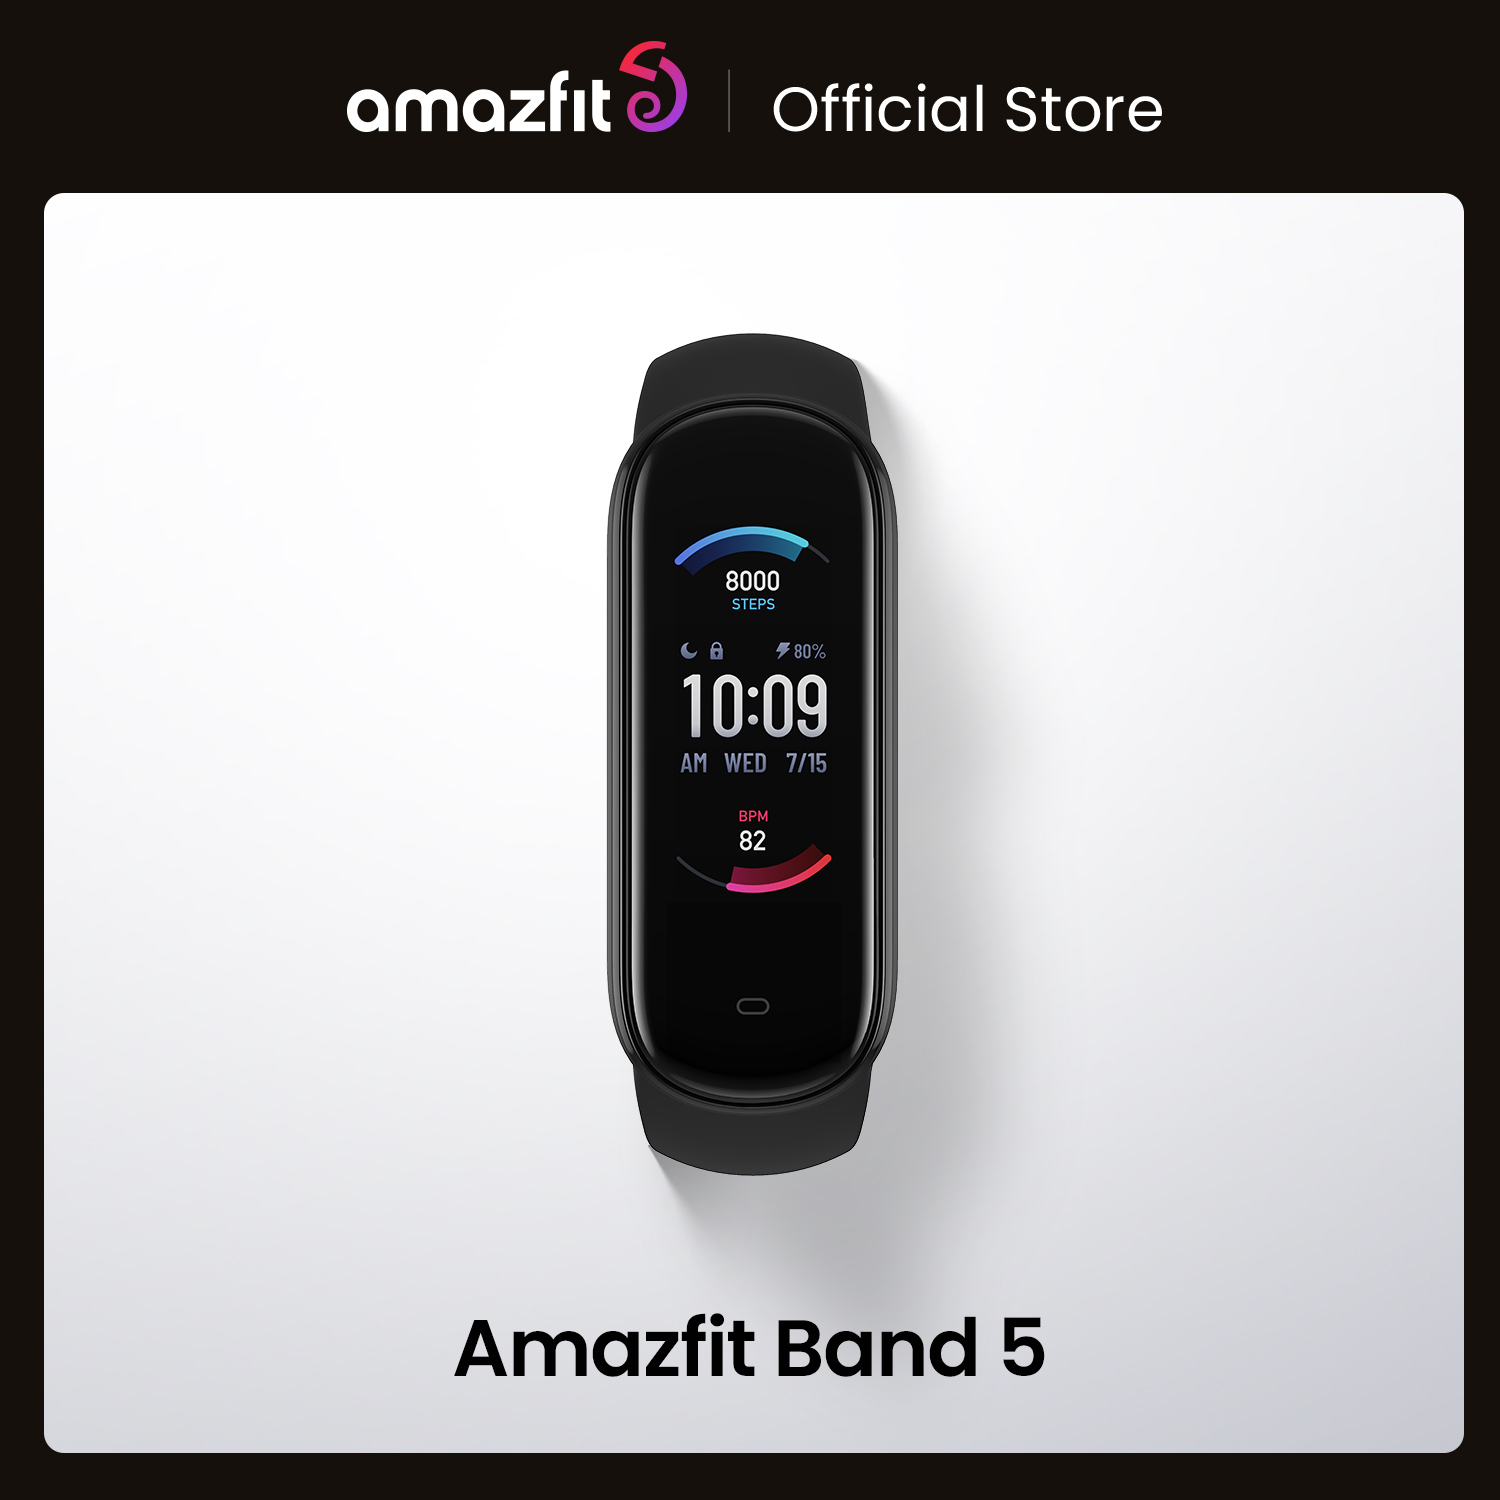 2020 New Amazfit Band 5 Smart Bracelet Color Display Heart Rate Fitness Tracker Waterproof Bluetooth 5.0 Sport Smart Wristband Smart Wristbands  - AliExpress